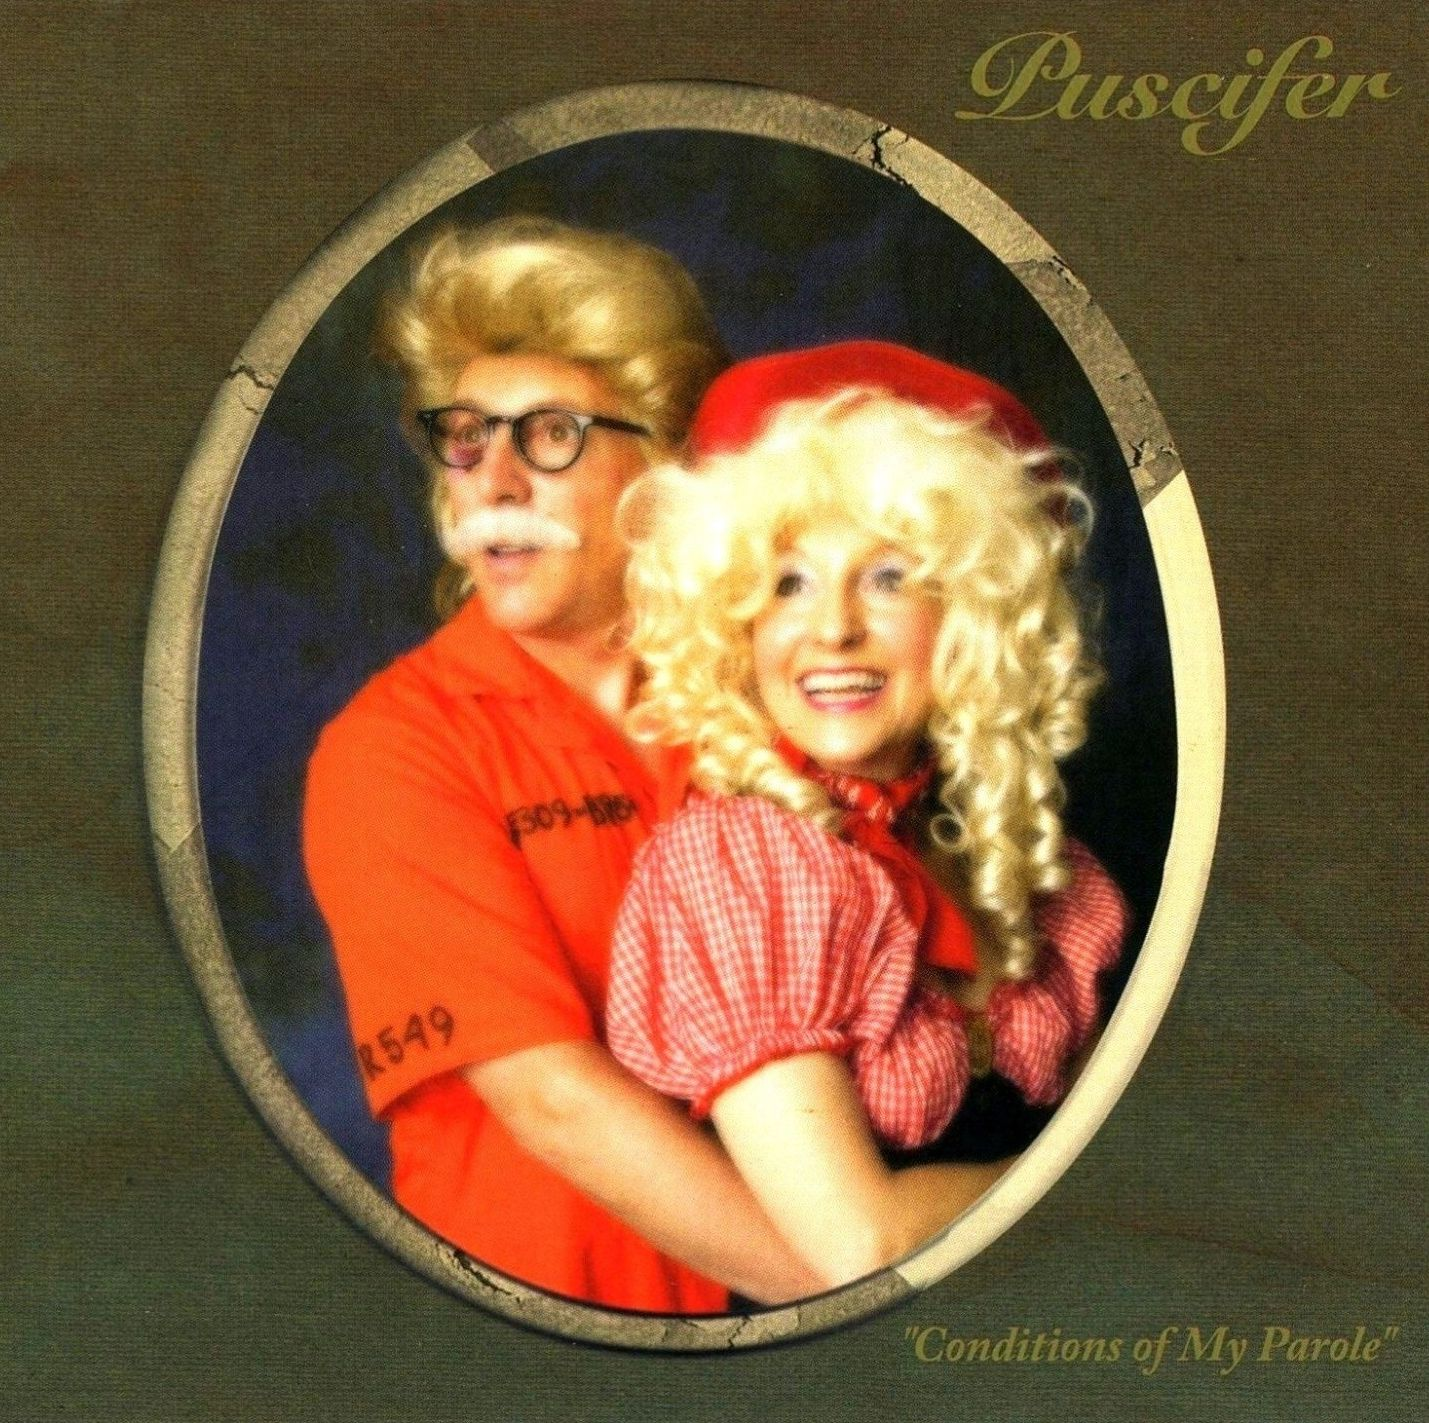 Puscifer - Conditions Of My Parole (2011)